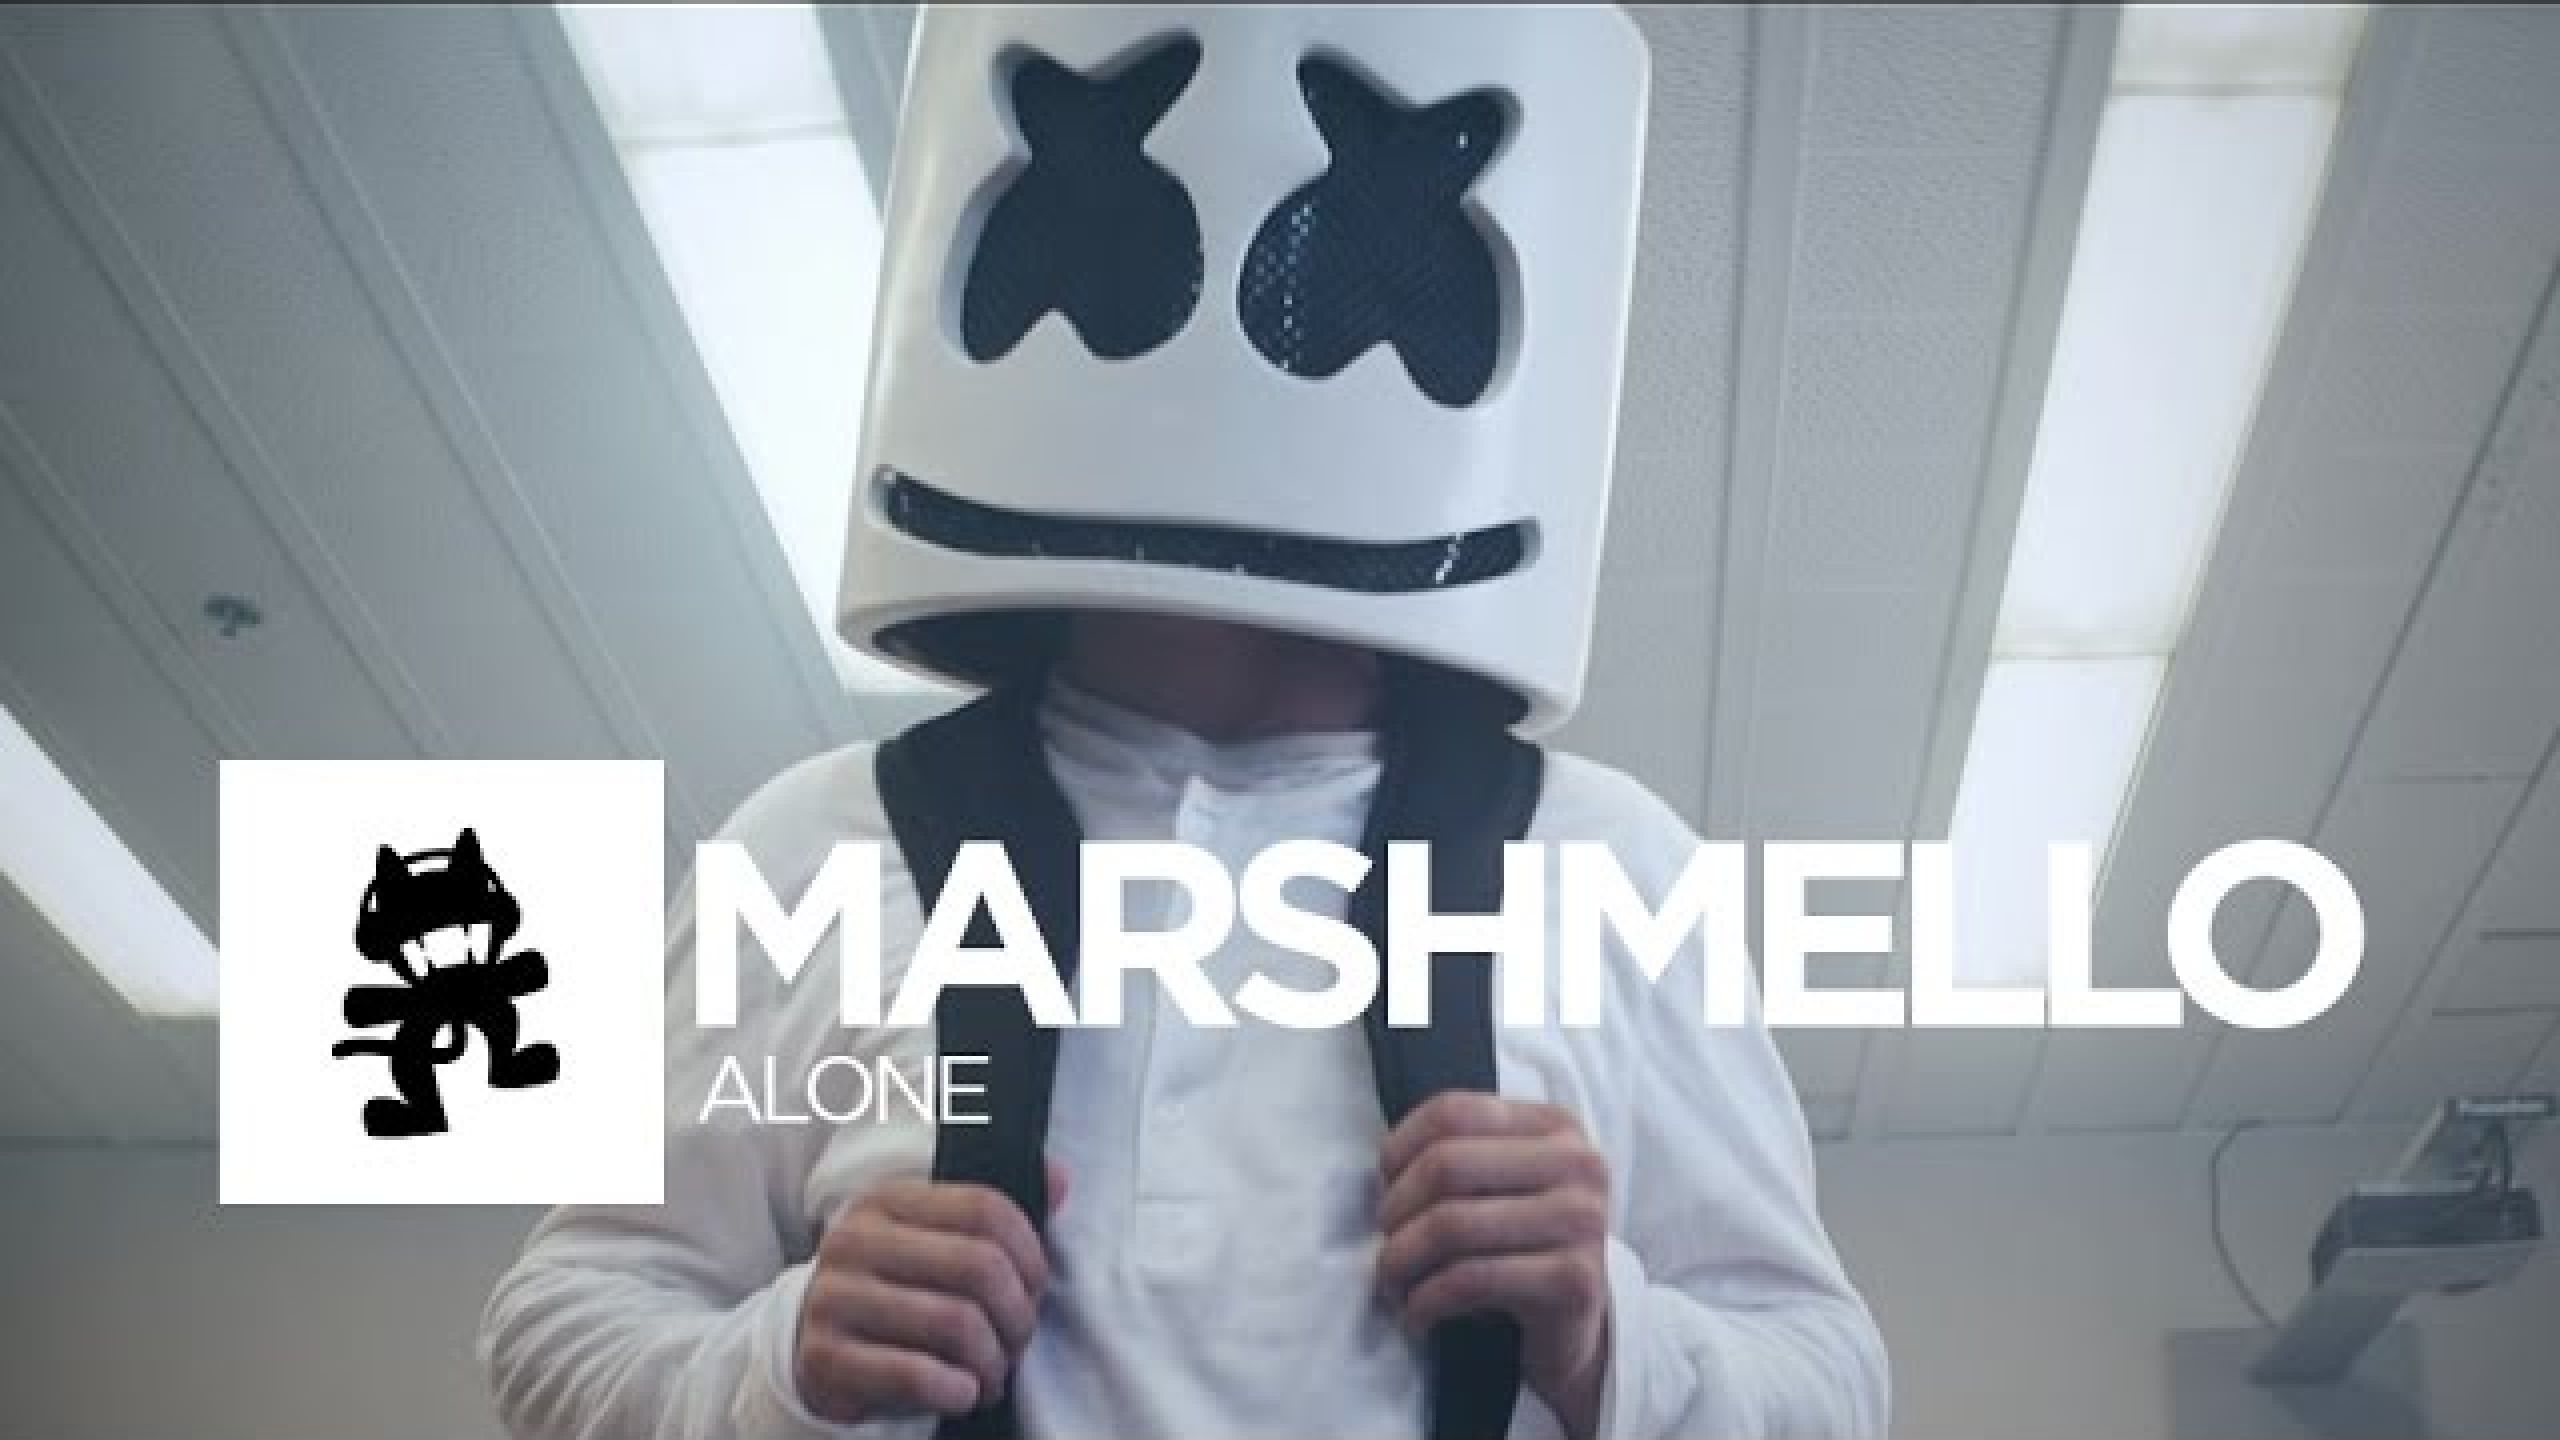 Marshmello - Alone [Monstercat Official Music Video